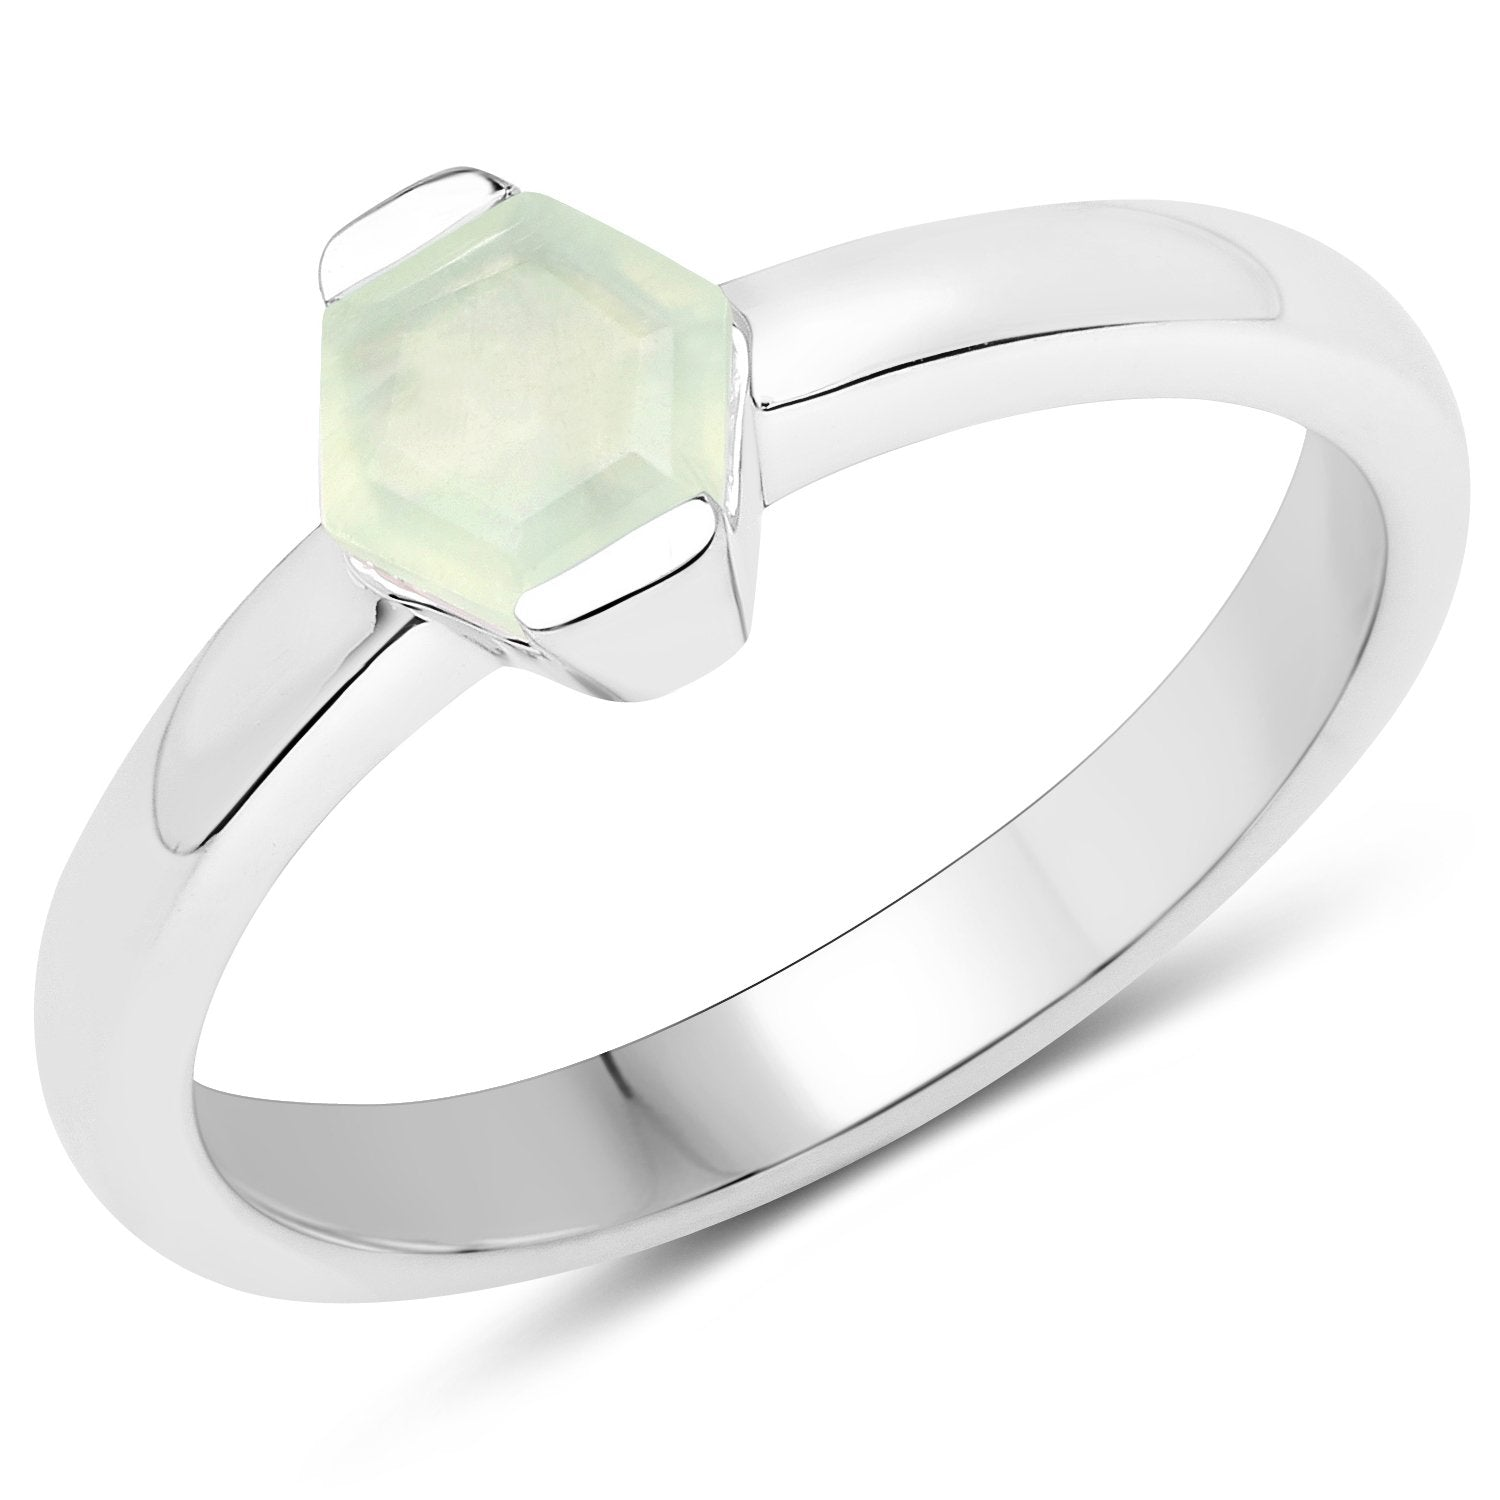 LoveHuang 0.54 Carats Genuine Prehnite Ring Solid .925 Sterling Silver With Rhodium Plating